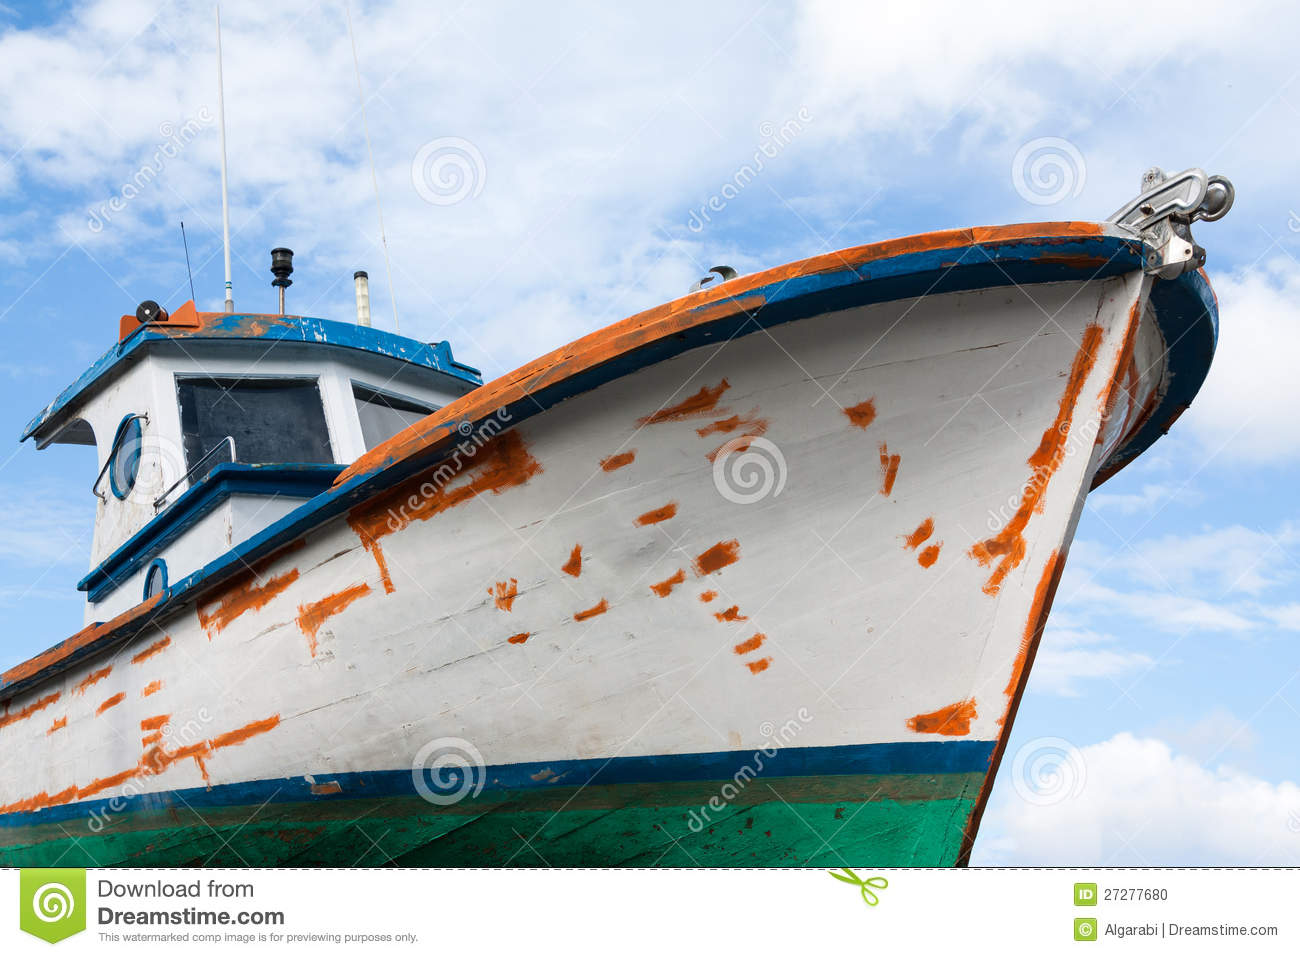 Old Wooden Fishing Boat Stock Photo - Image: 27277680